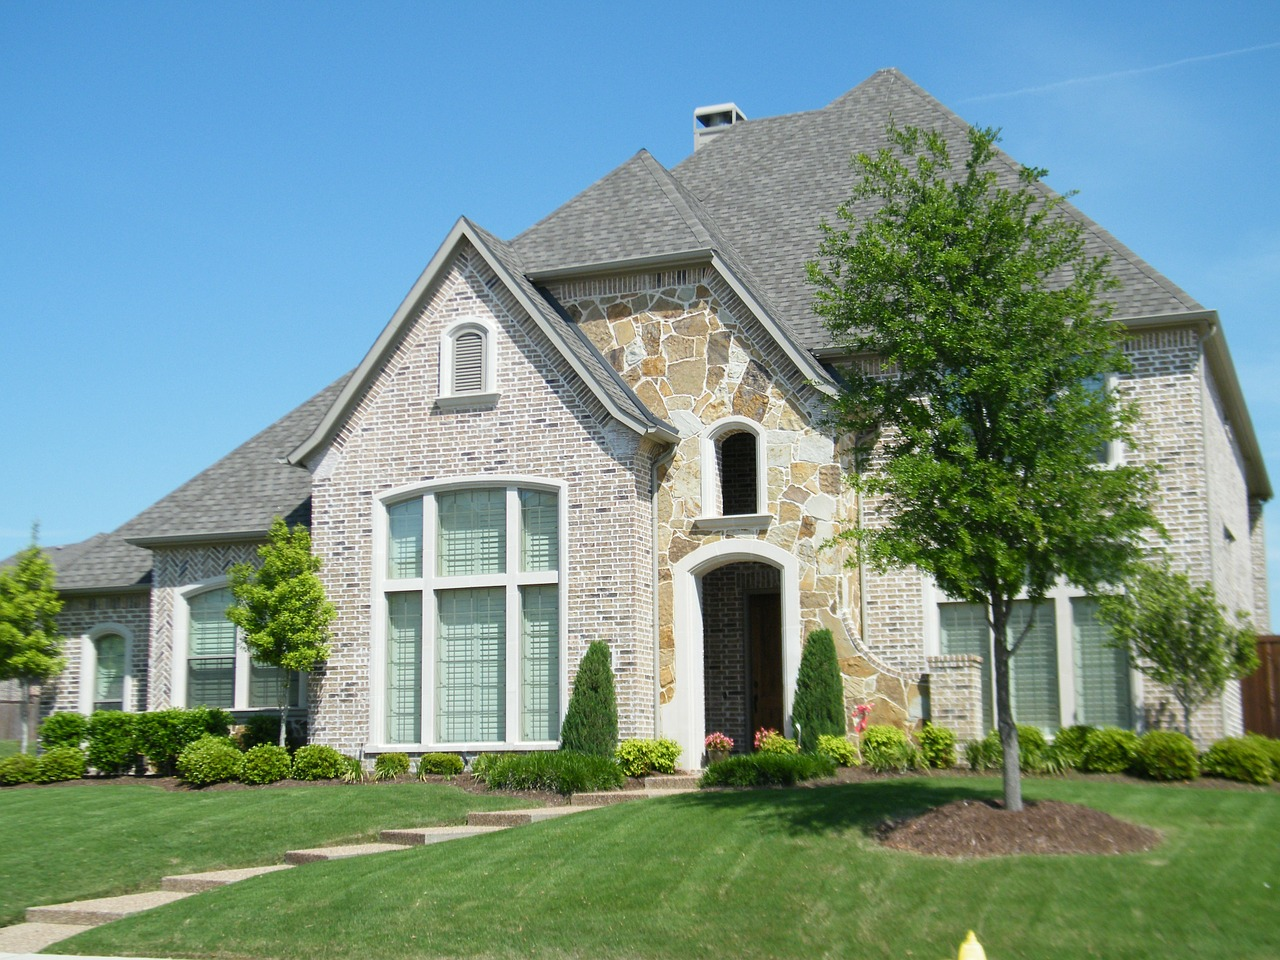 Difference Between Roofs and Gable Hip